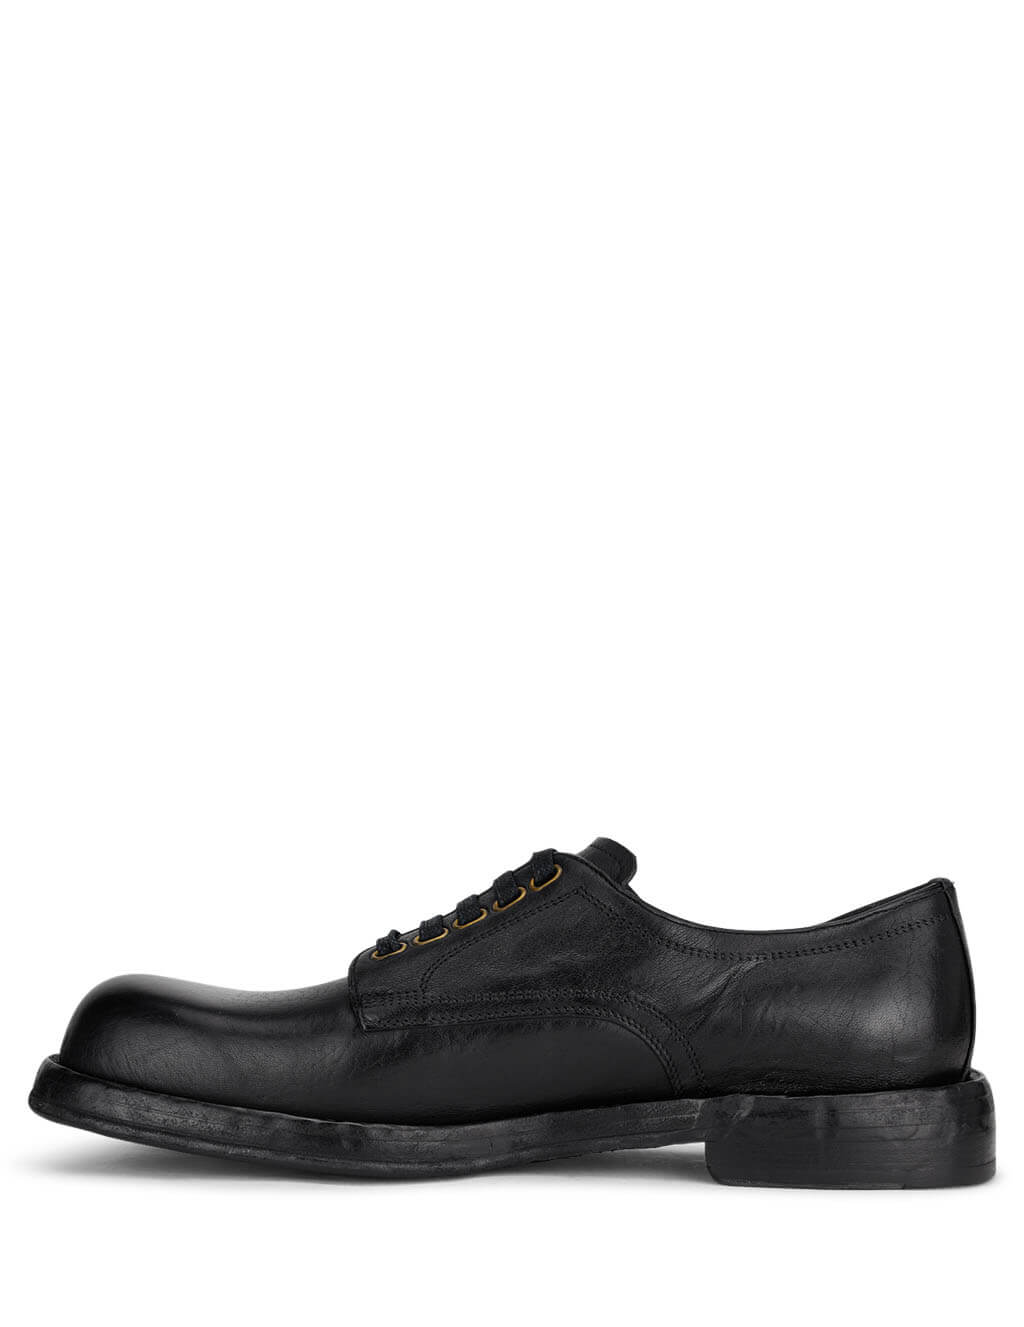 Dolce&Gabbana Men's Black Laced Derby Shoes  A10638AW35280999